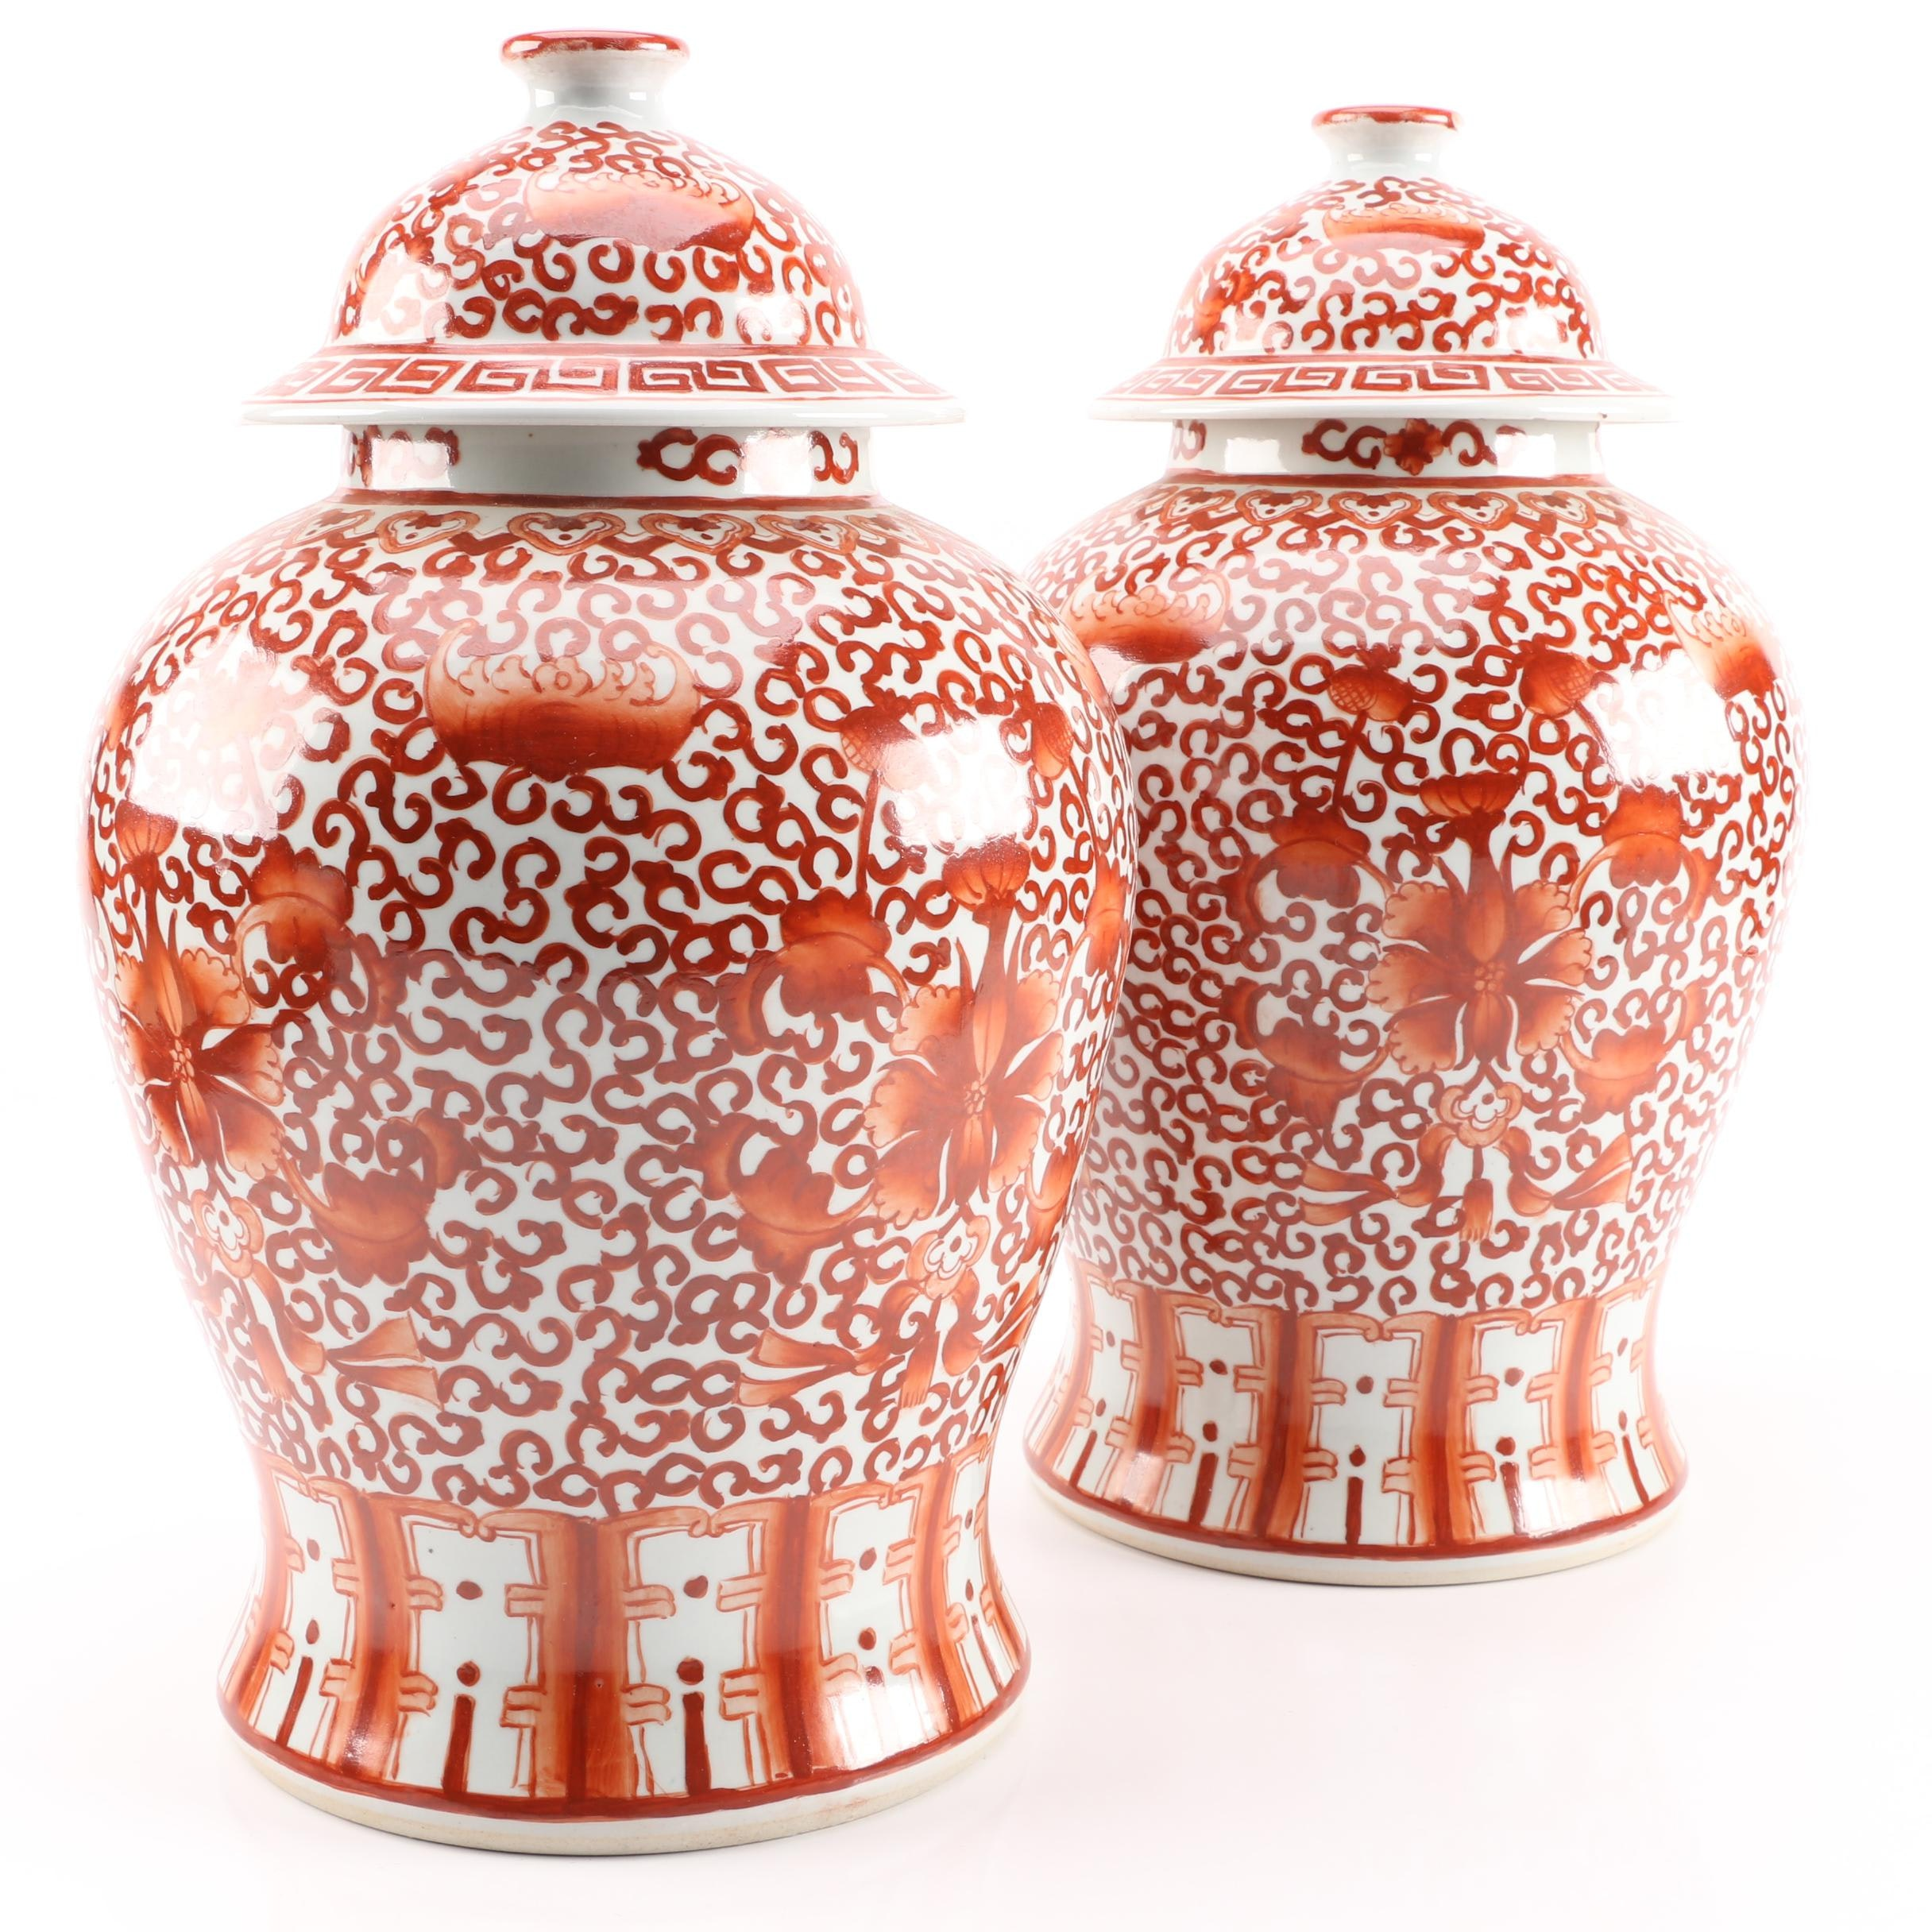 Pair of Decorative Chinese Orange and White Ginger Jars